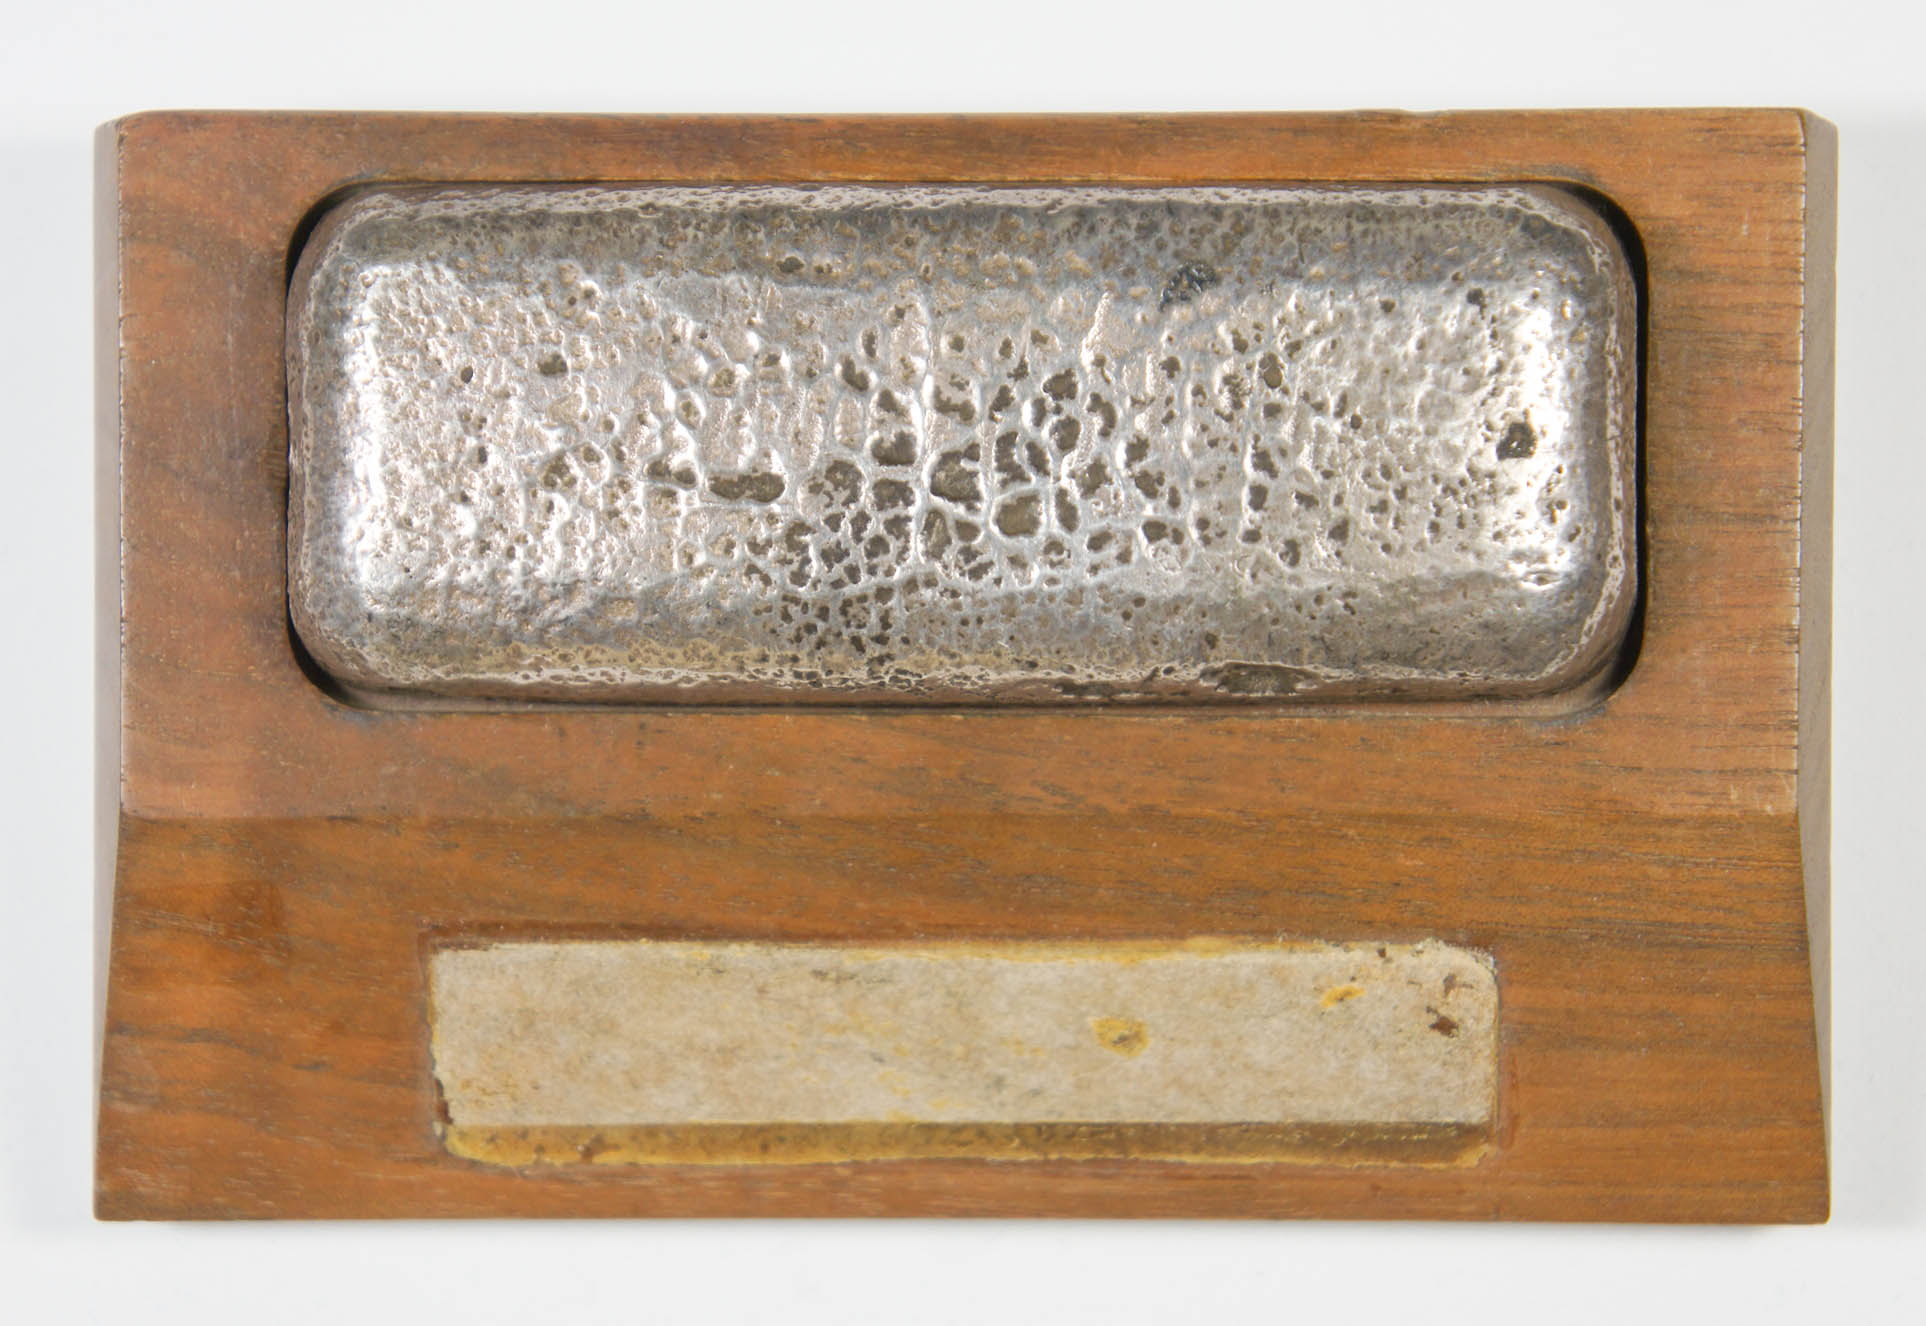 .999 Fine Silver Ingot Weighing 14.5 Troy Ounces